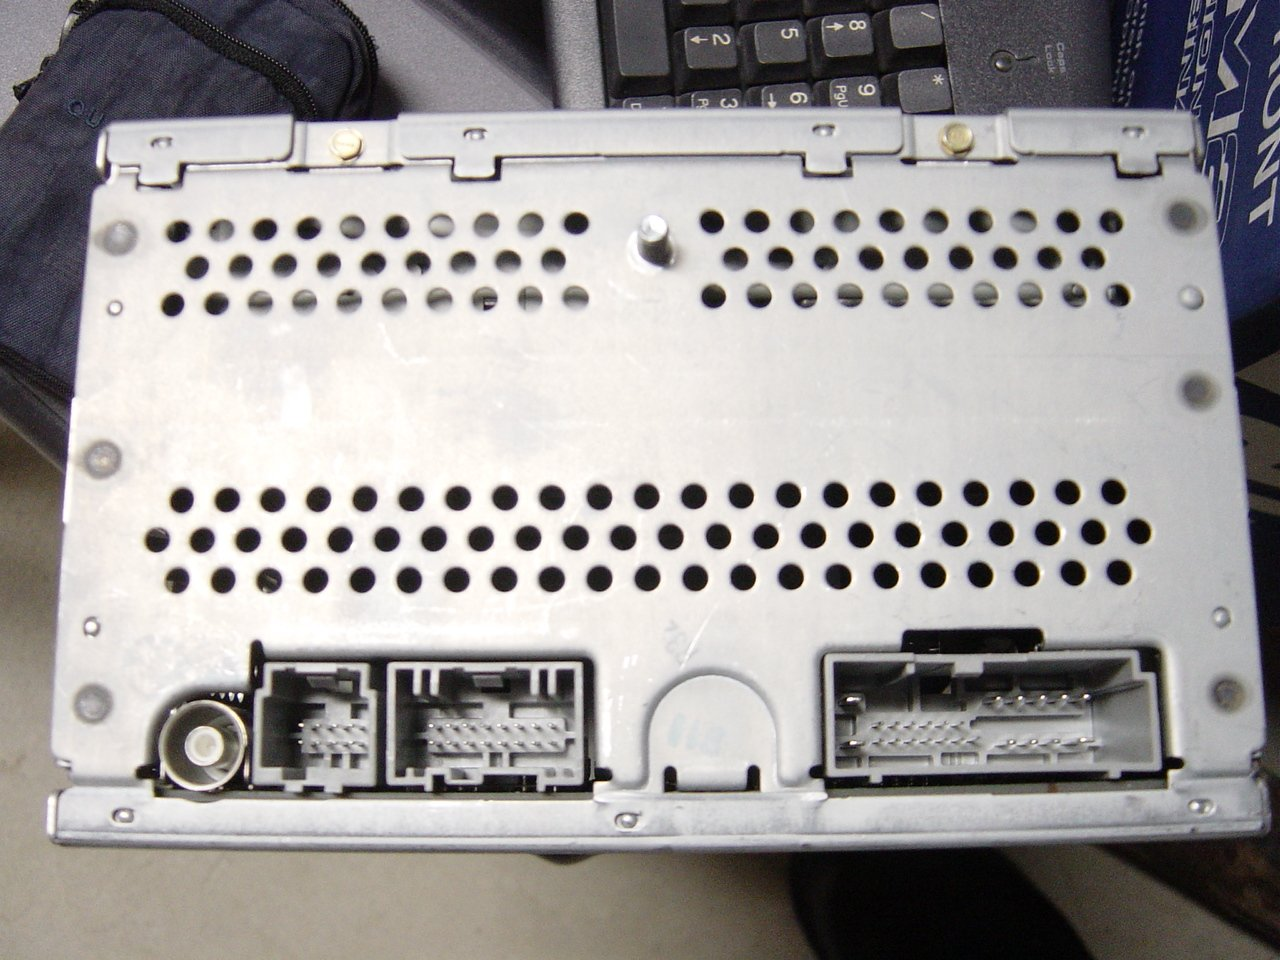 58342d1231242255 shaker 500 1000 stereo picture needed dsc02924 shaker 500 1000 stereo picture needed ford mustang forum 2007 ford mustang shaker 500 wiring diagram at suagrazia.org